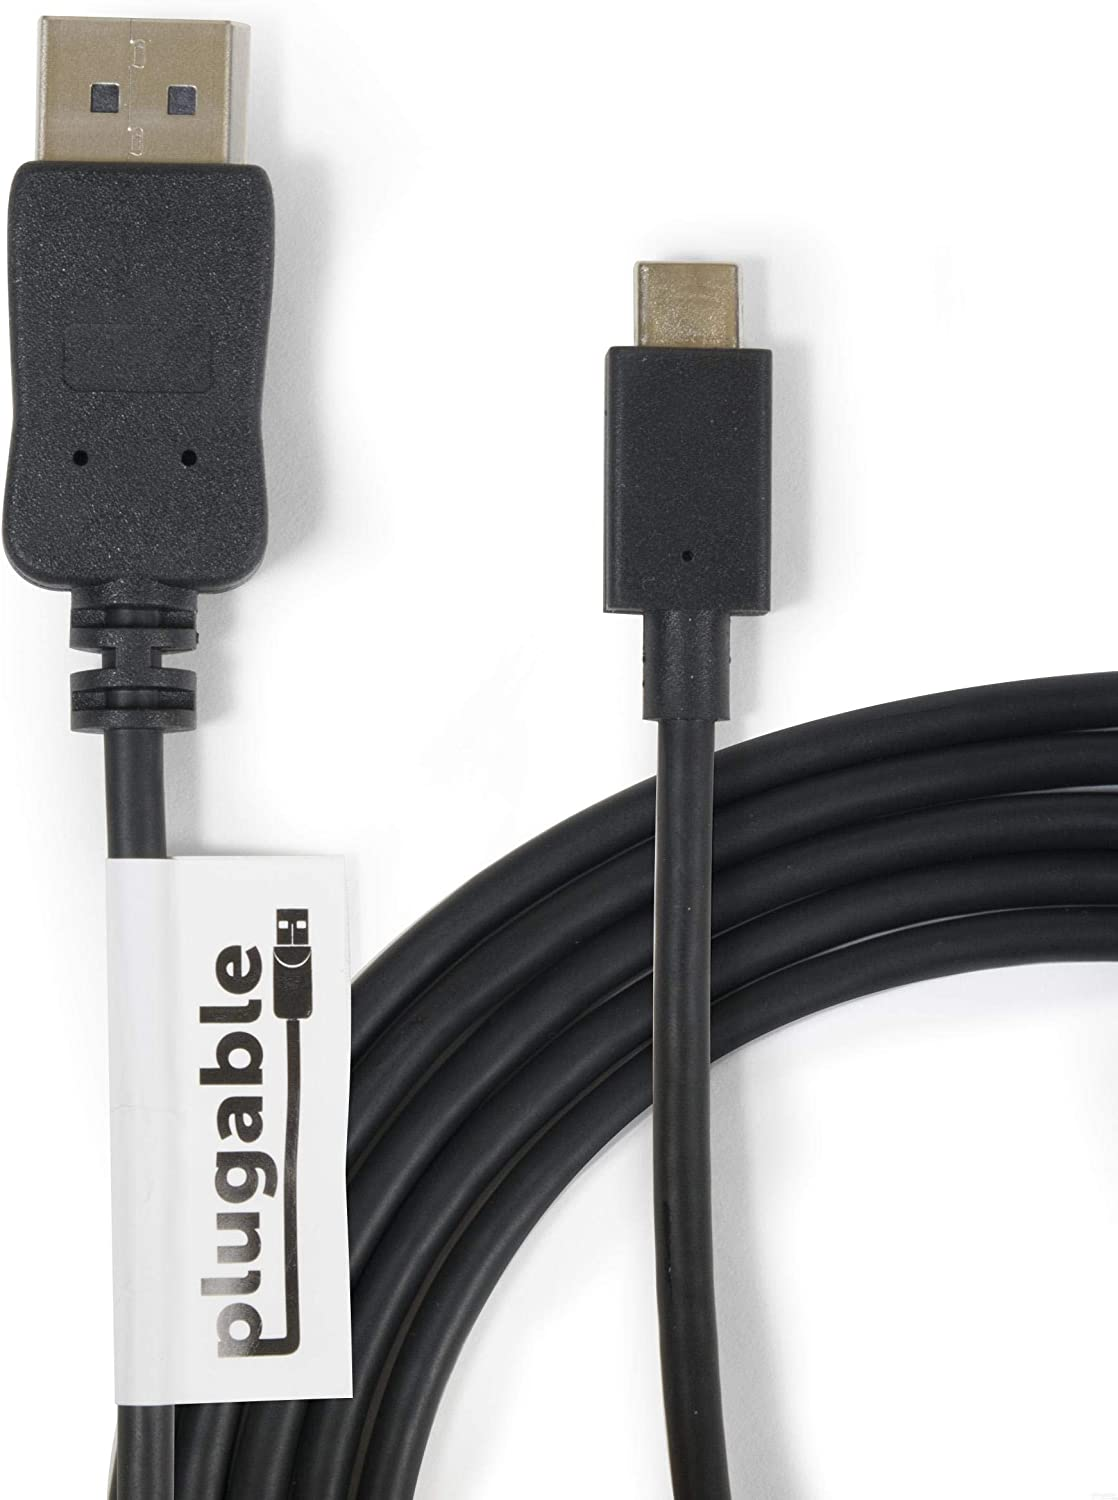 Plugable USB C to DisplayPort Adapter - 6ft (1.8m) Adapter Cable (Supports Resolutions up to 4K at 60Hz)